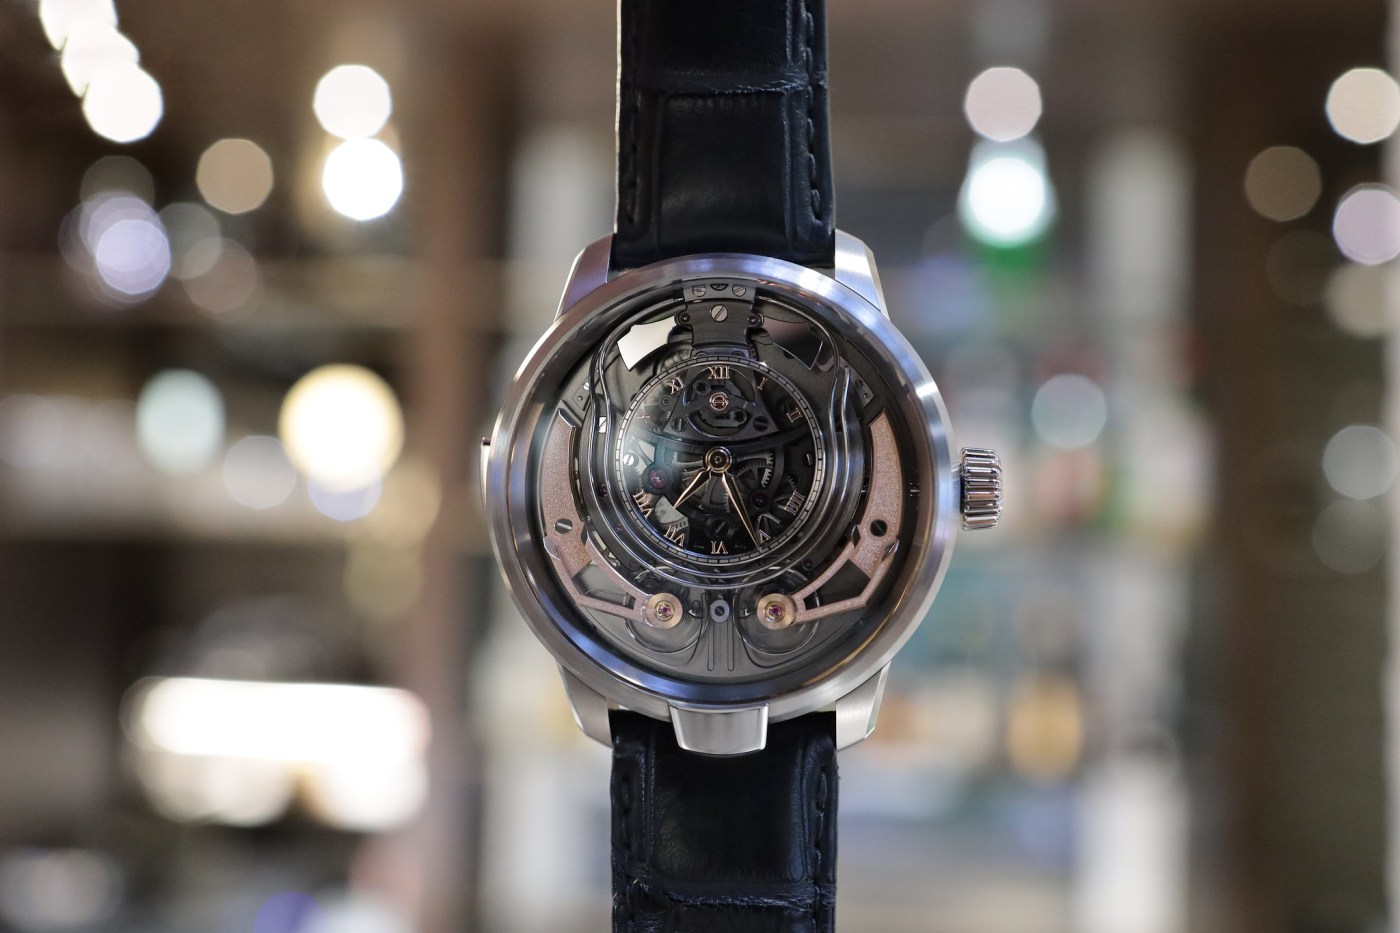 Armin Strom Minute Repeater Resonance hands-on